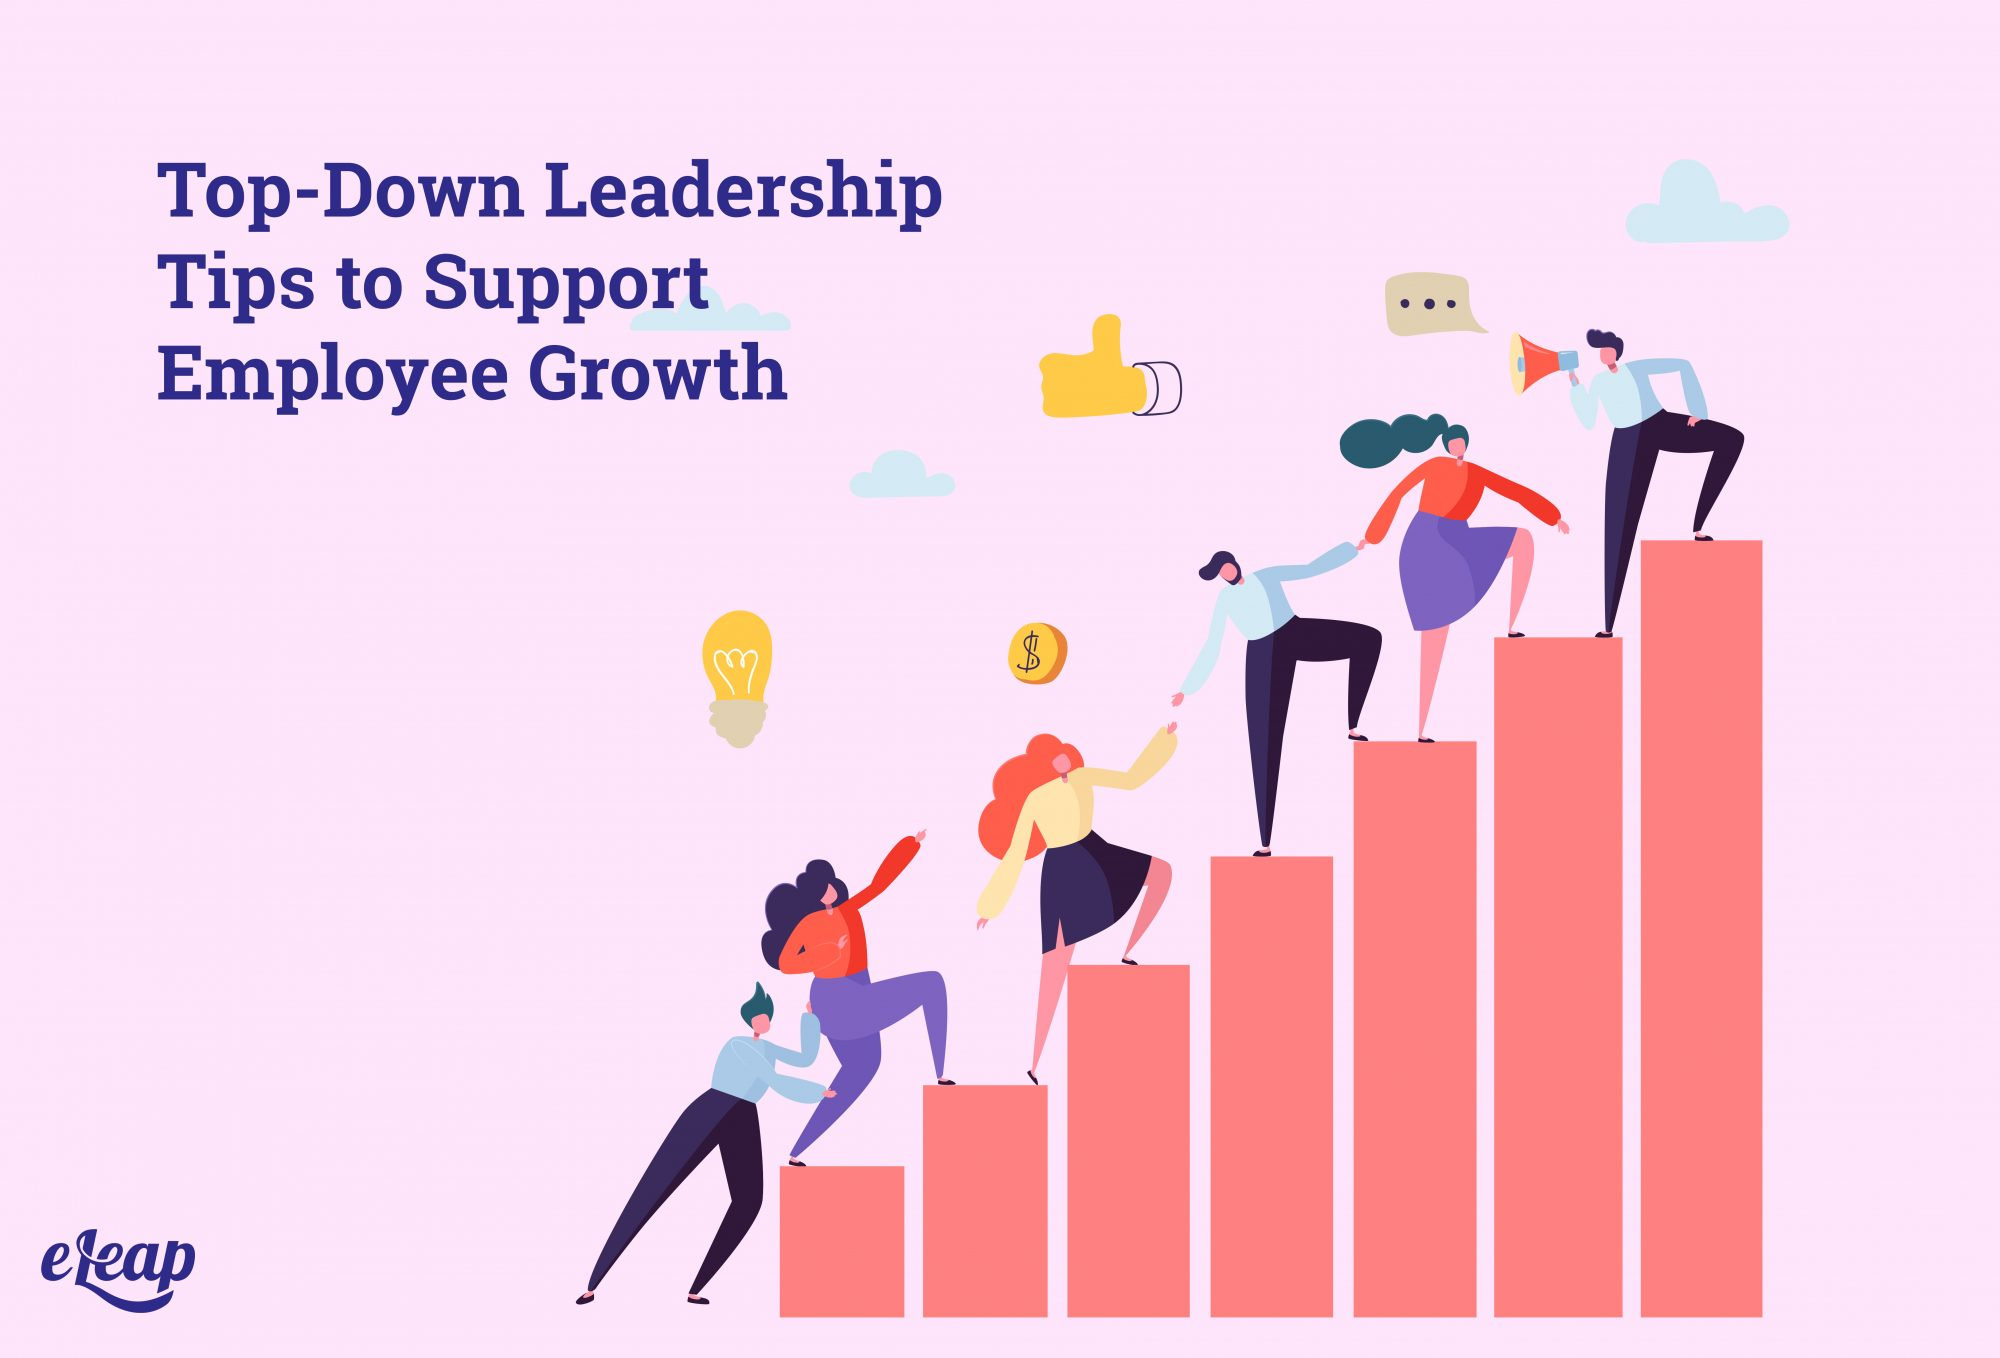 Top-Down Leadership Tips to Support Employee Growth